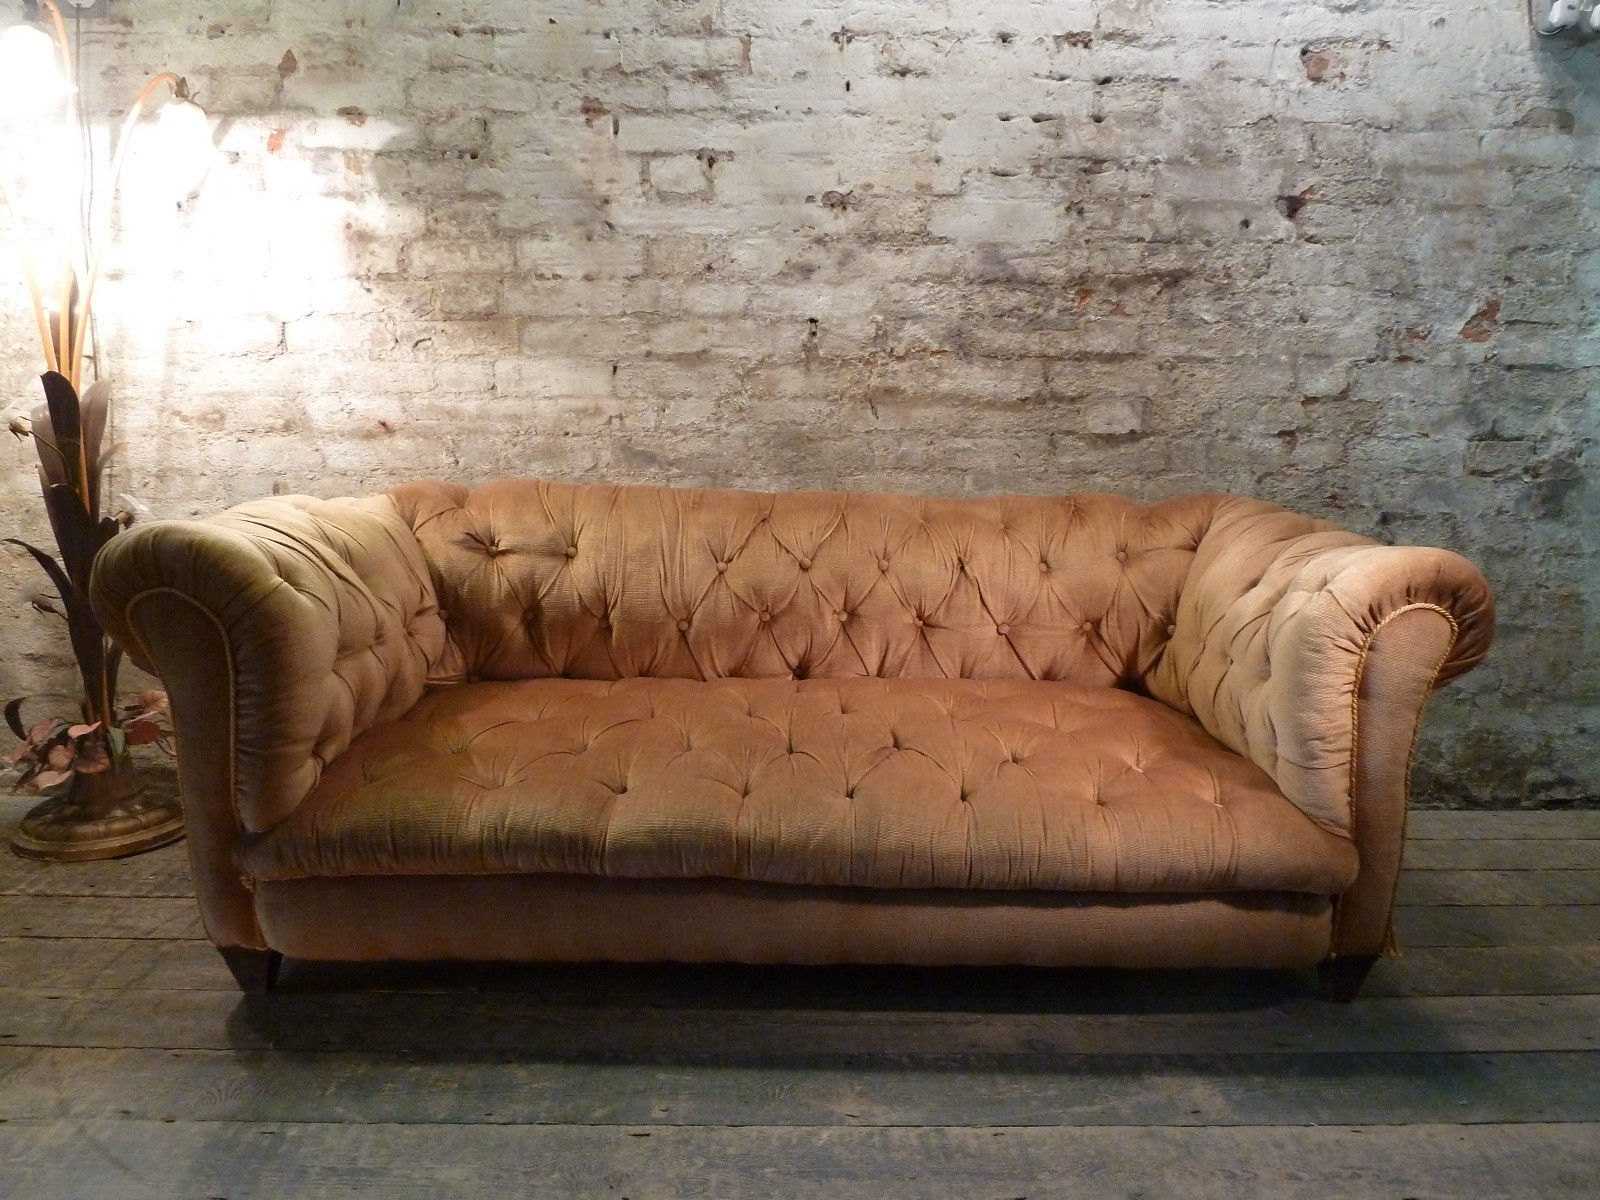 Groovy Gold Dralon Velvet Antique Chesterfield Vintage Sofa Mid Century Gmtry Best Dining Table And Chair Ideas Images Gmtryco